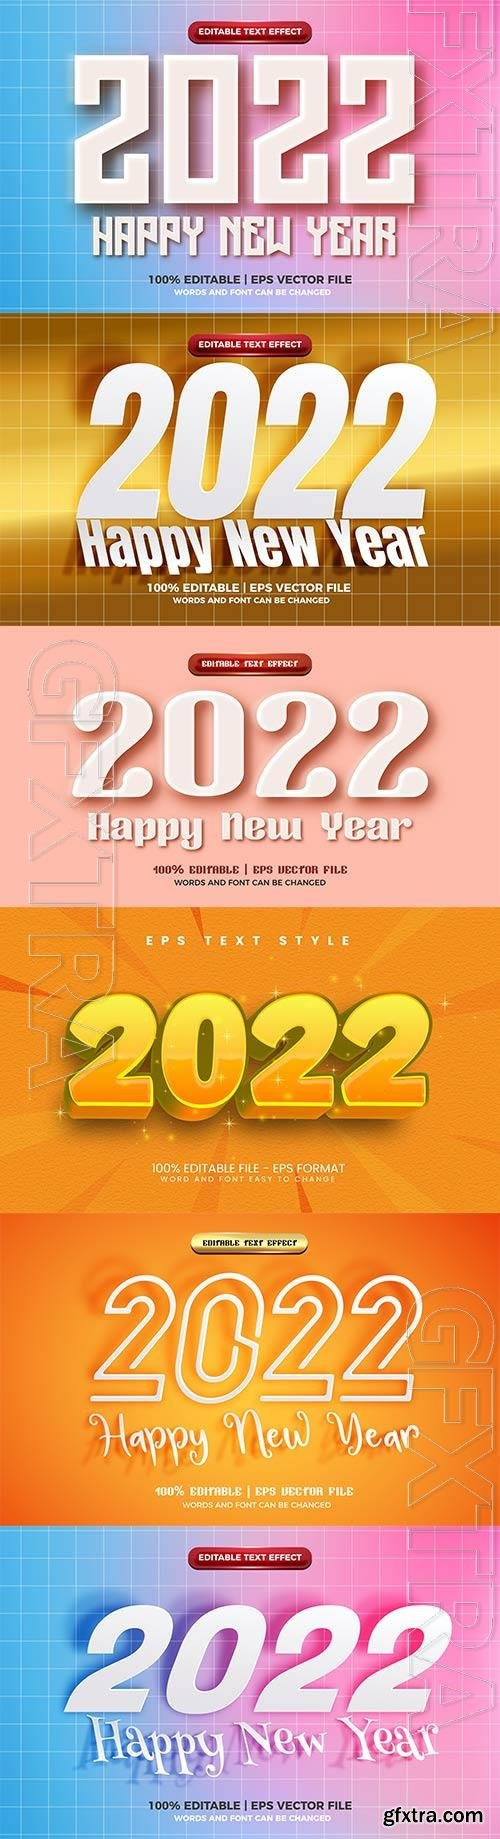 Happy new year 2022 modern embossed 3d editable text effect vector